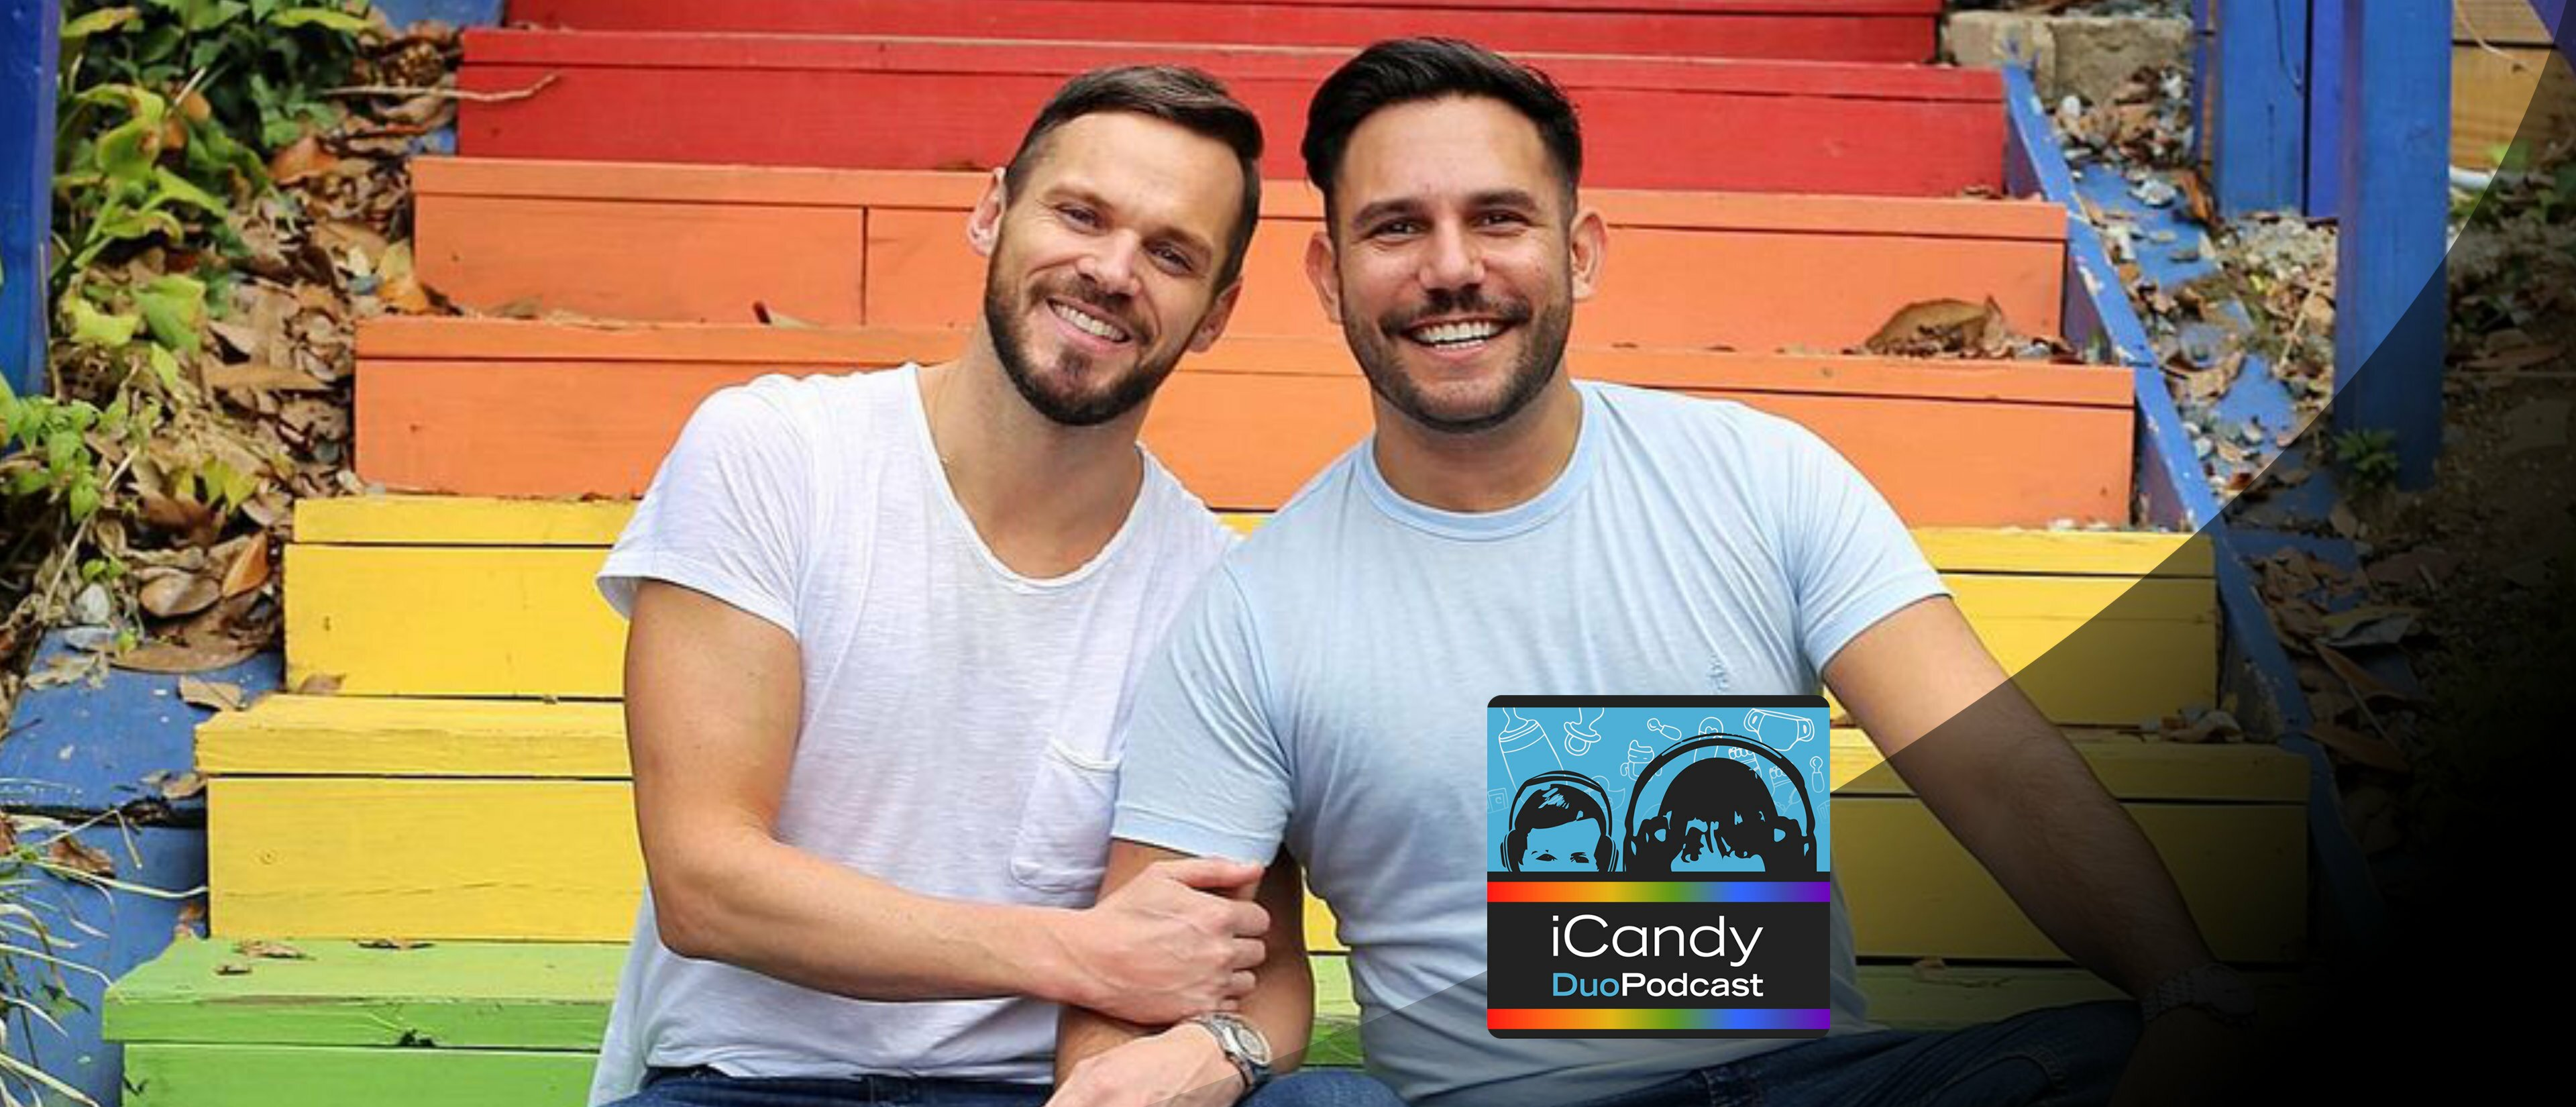 The iCandy Duo Podcast - The Travelling Gays